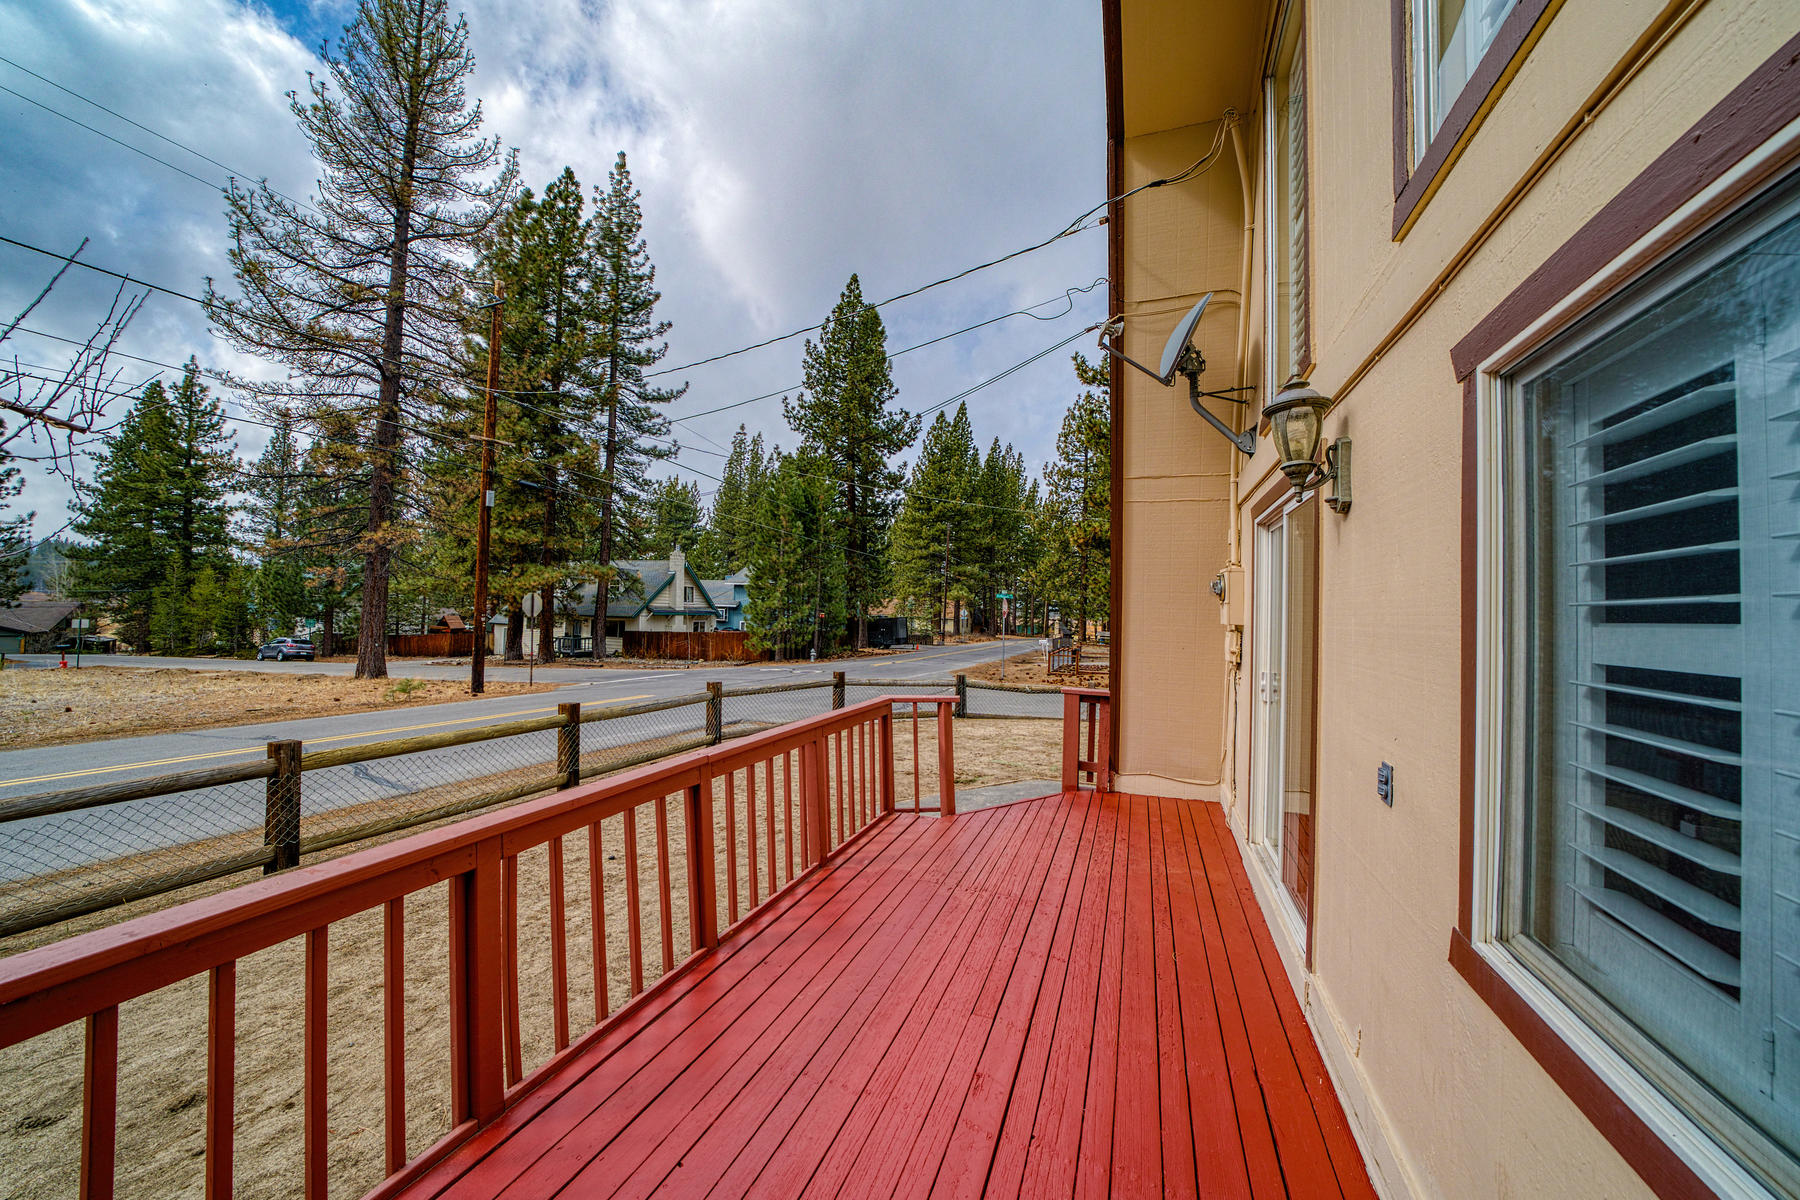 Single Family Homes for Active at Al Tahoe Charmer 3046 Bellevue Ave South Lake Tahoe, California 96150 United States